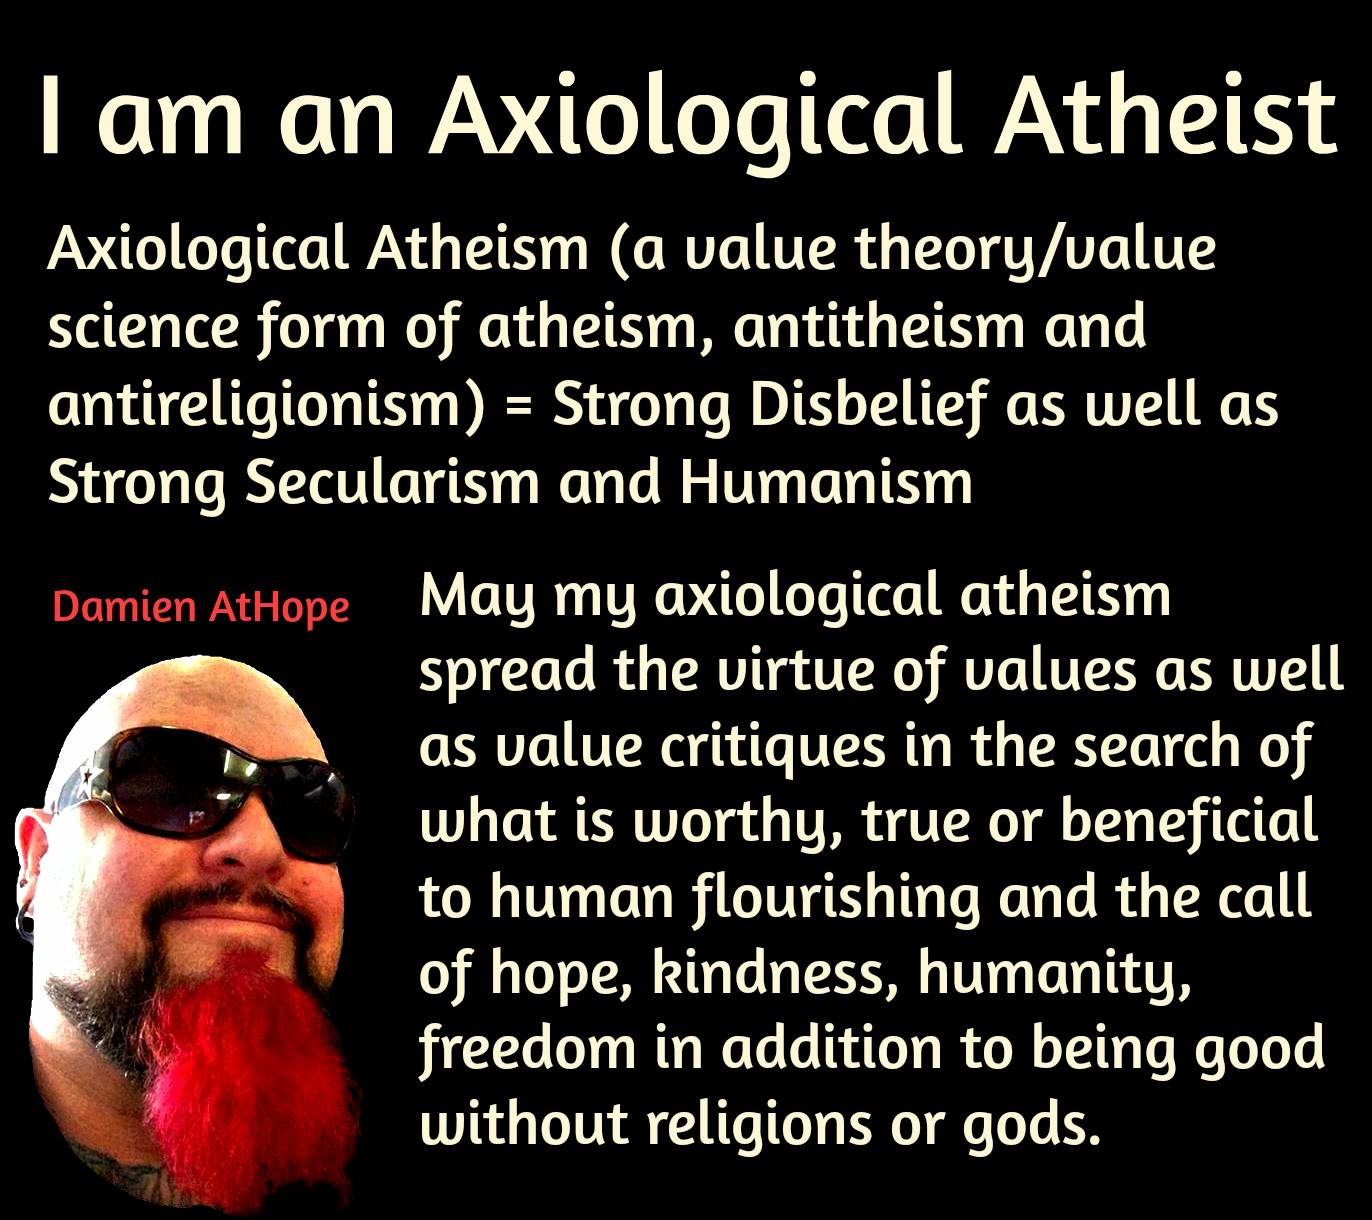 value theory value science atheism axiological atheism damien